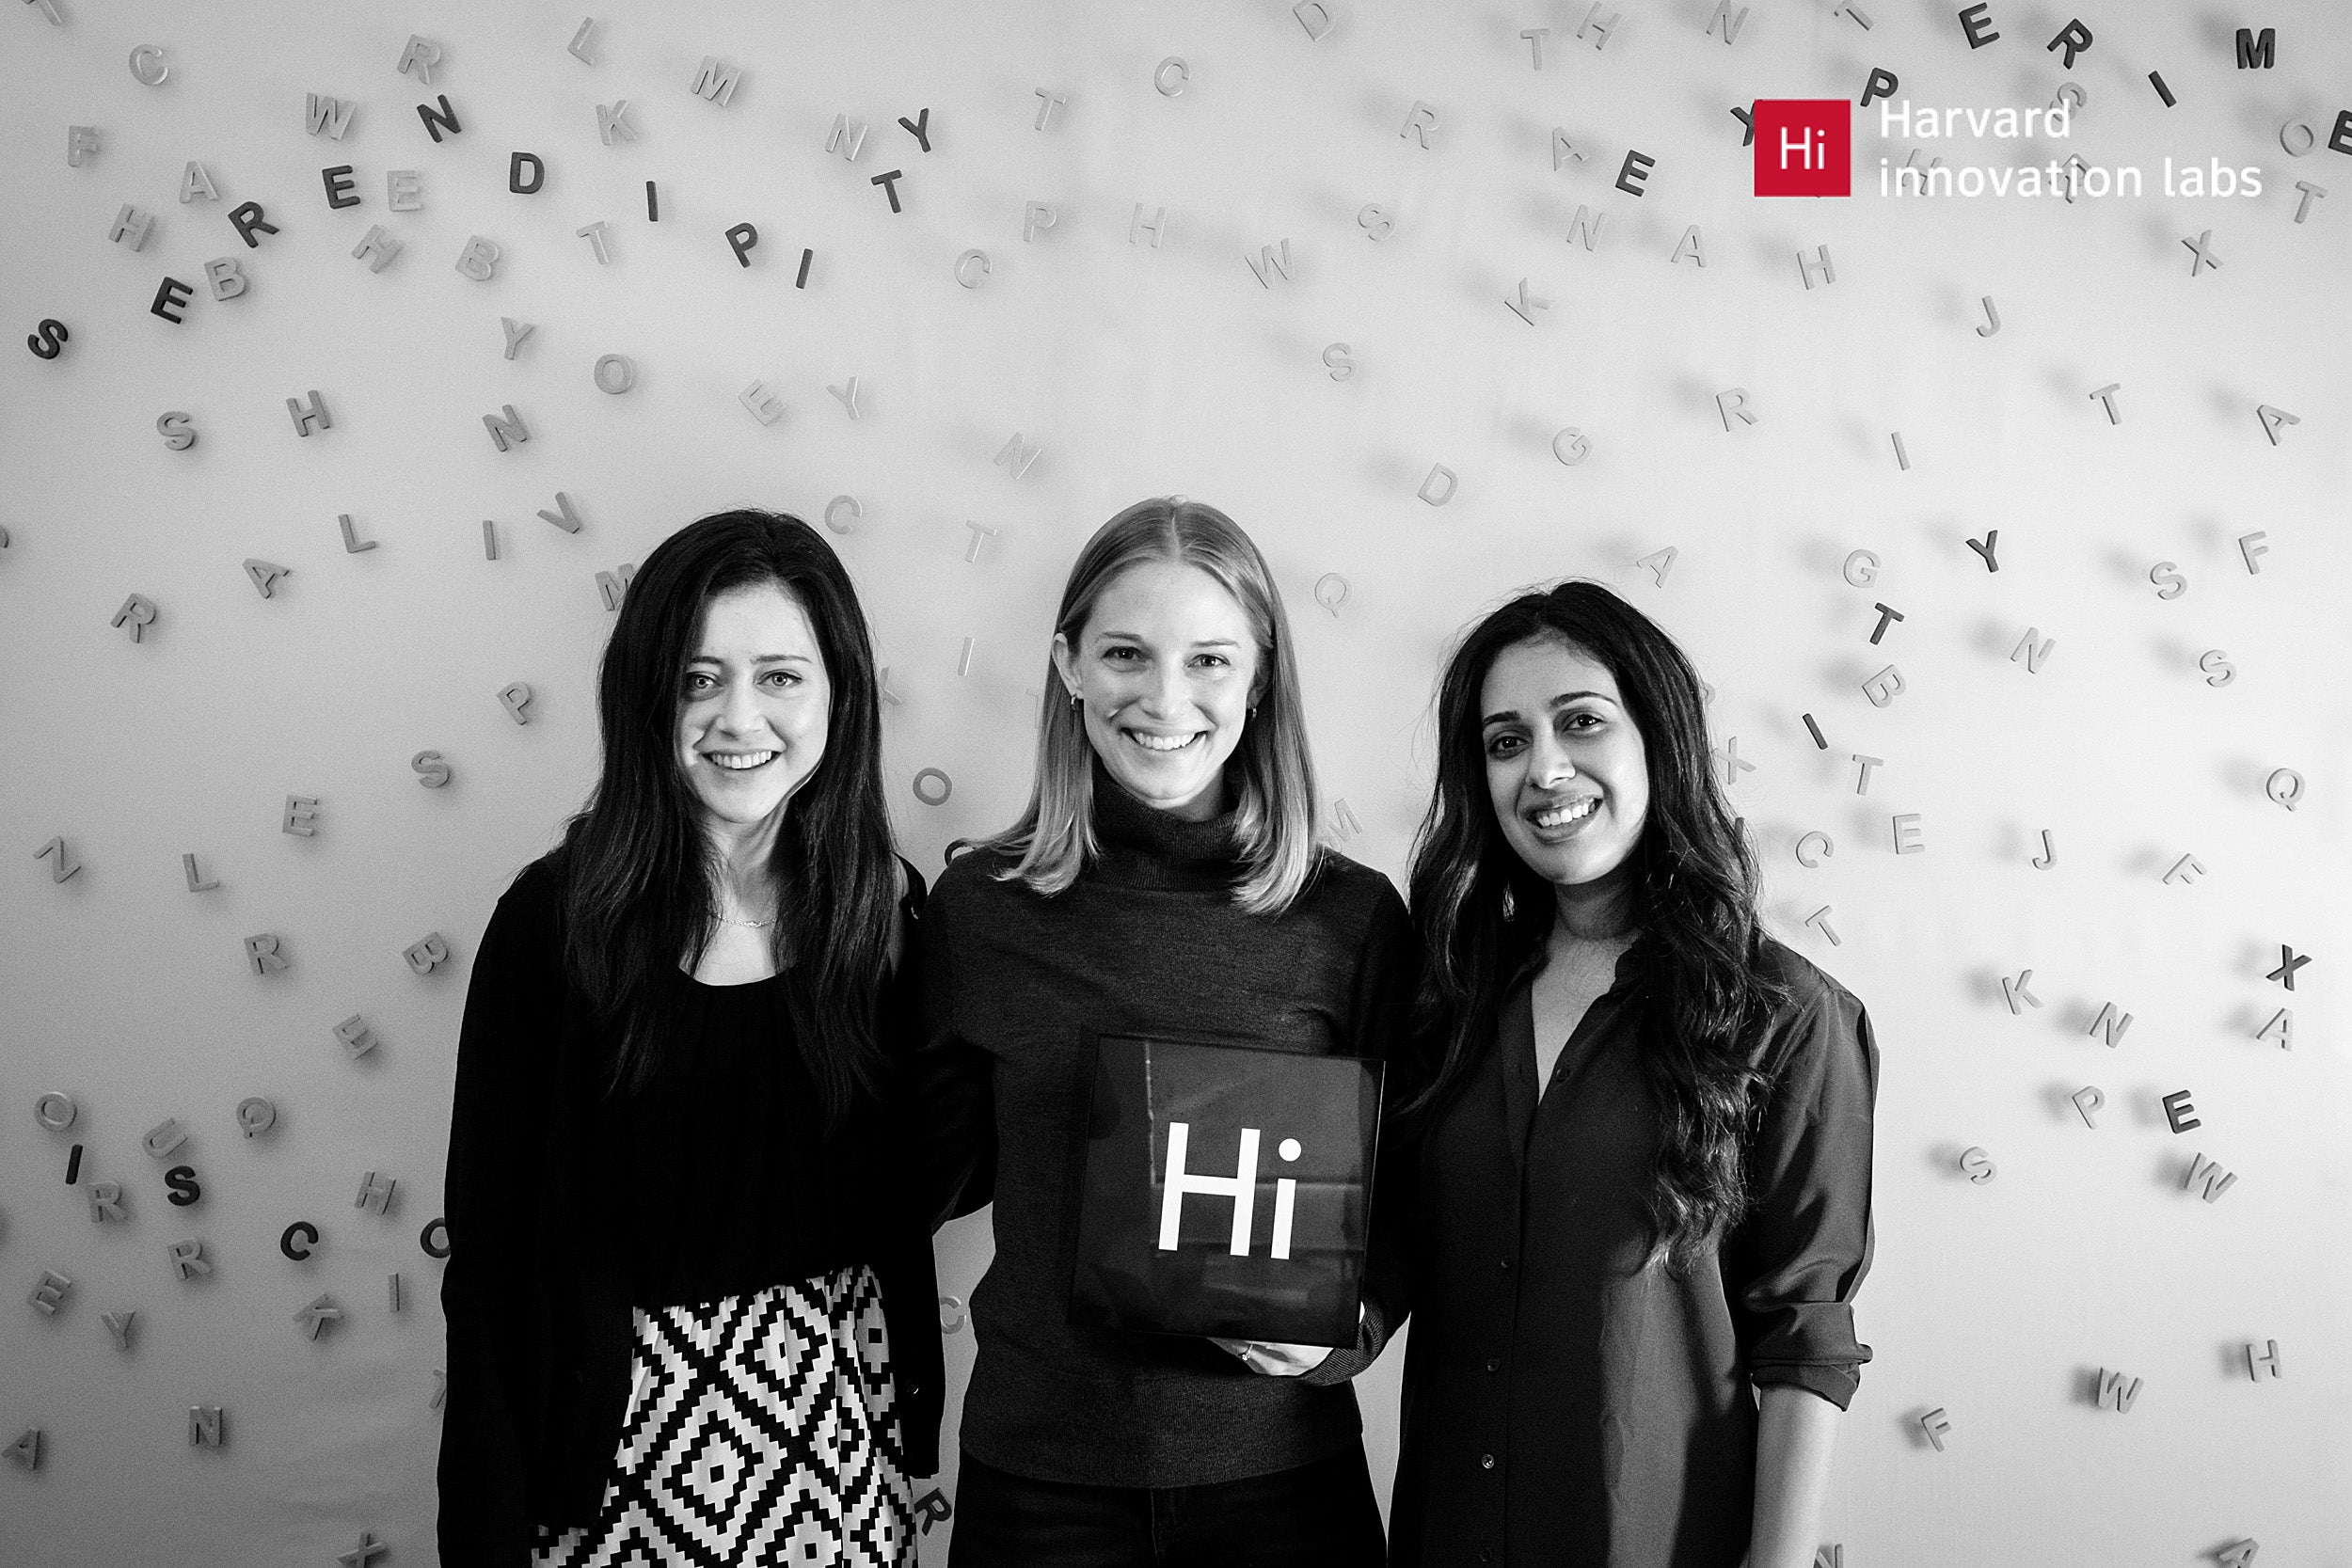 """Three women standing together holding a small sign that reads """"Hi"""""""